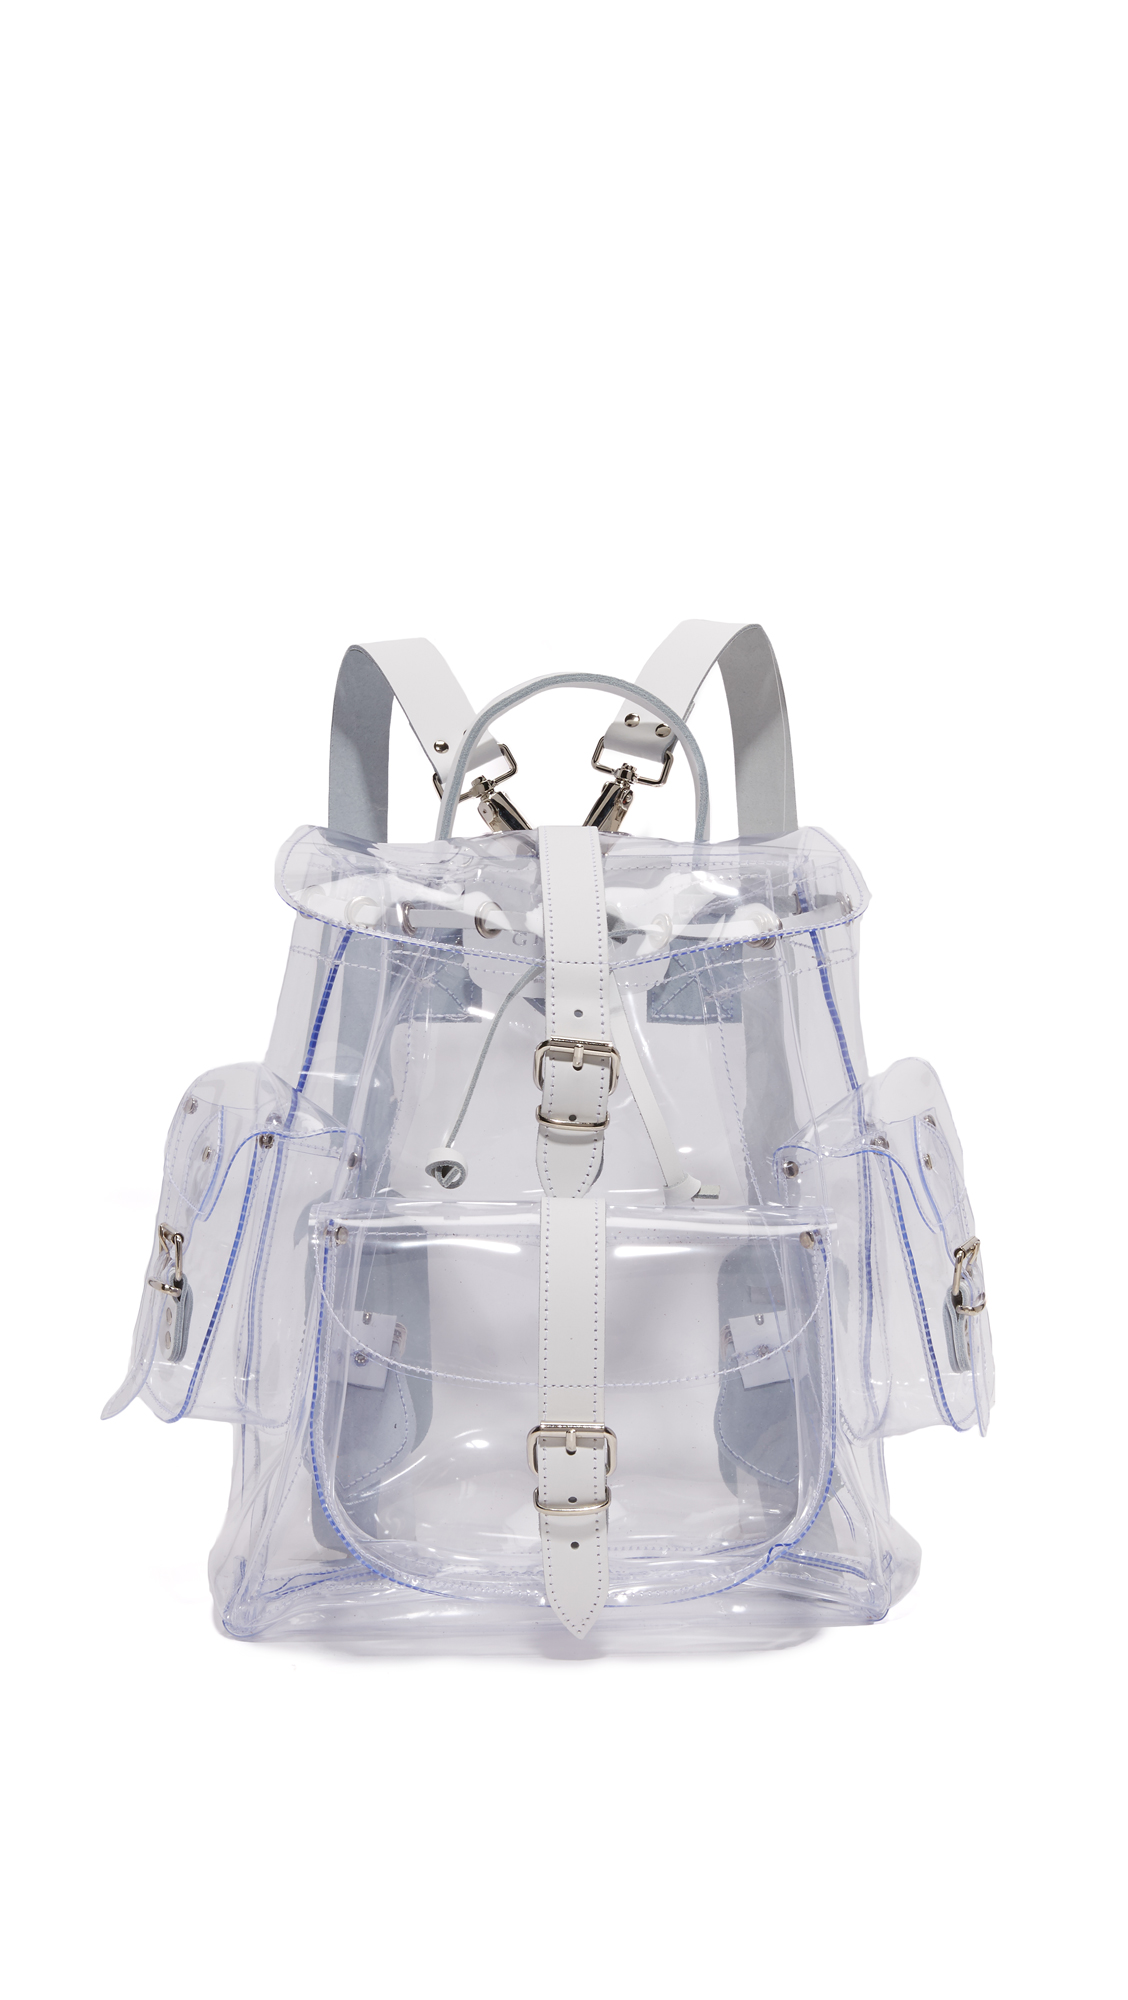 This Grafea backpack made from transparent vinyl and trimmed in sturdy leather. 3 pouch pockets and 1 zip back pocket. Buckle top flap and drawstring top line. Unlined interior. Locker loop and optional, adjustable shoulder straps. Dust bag